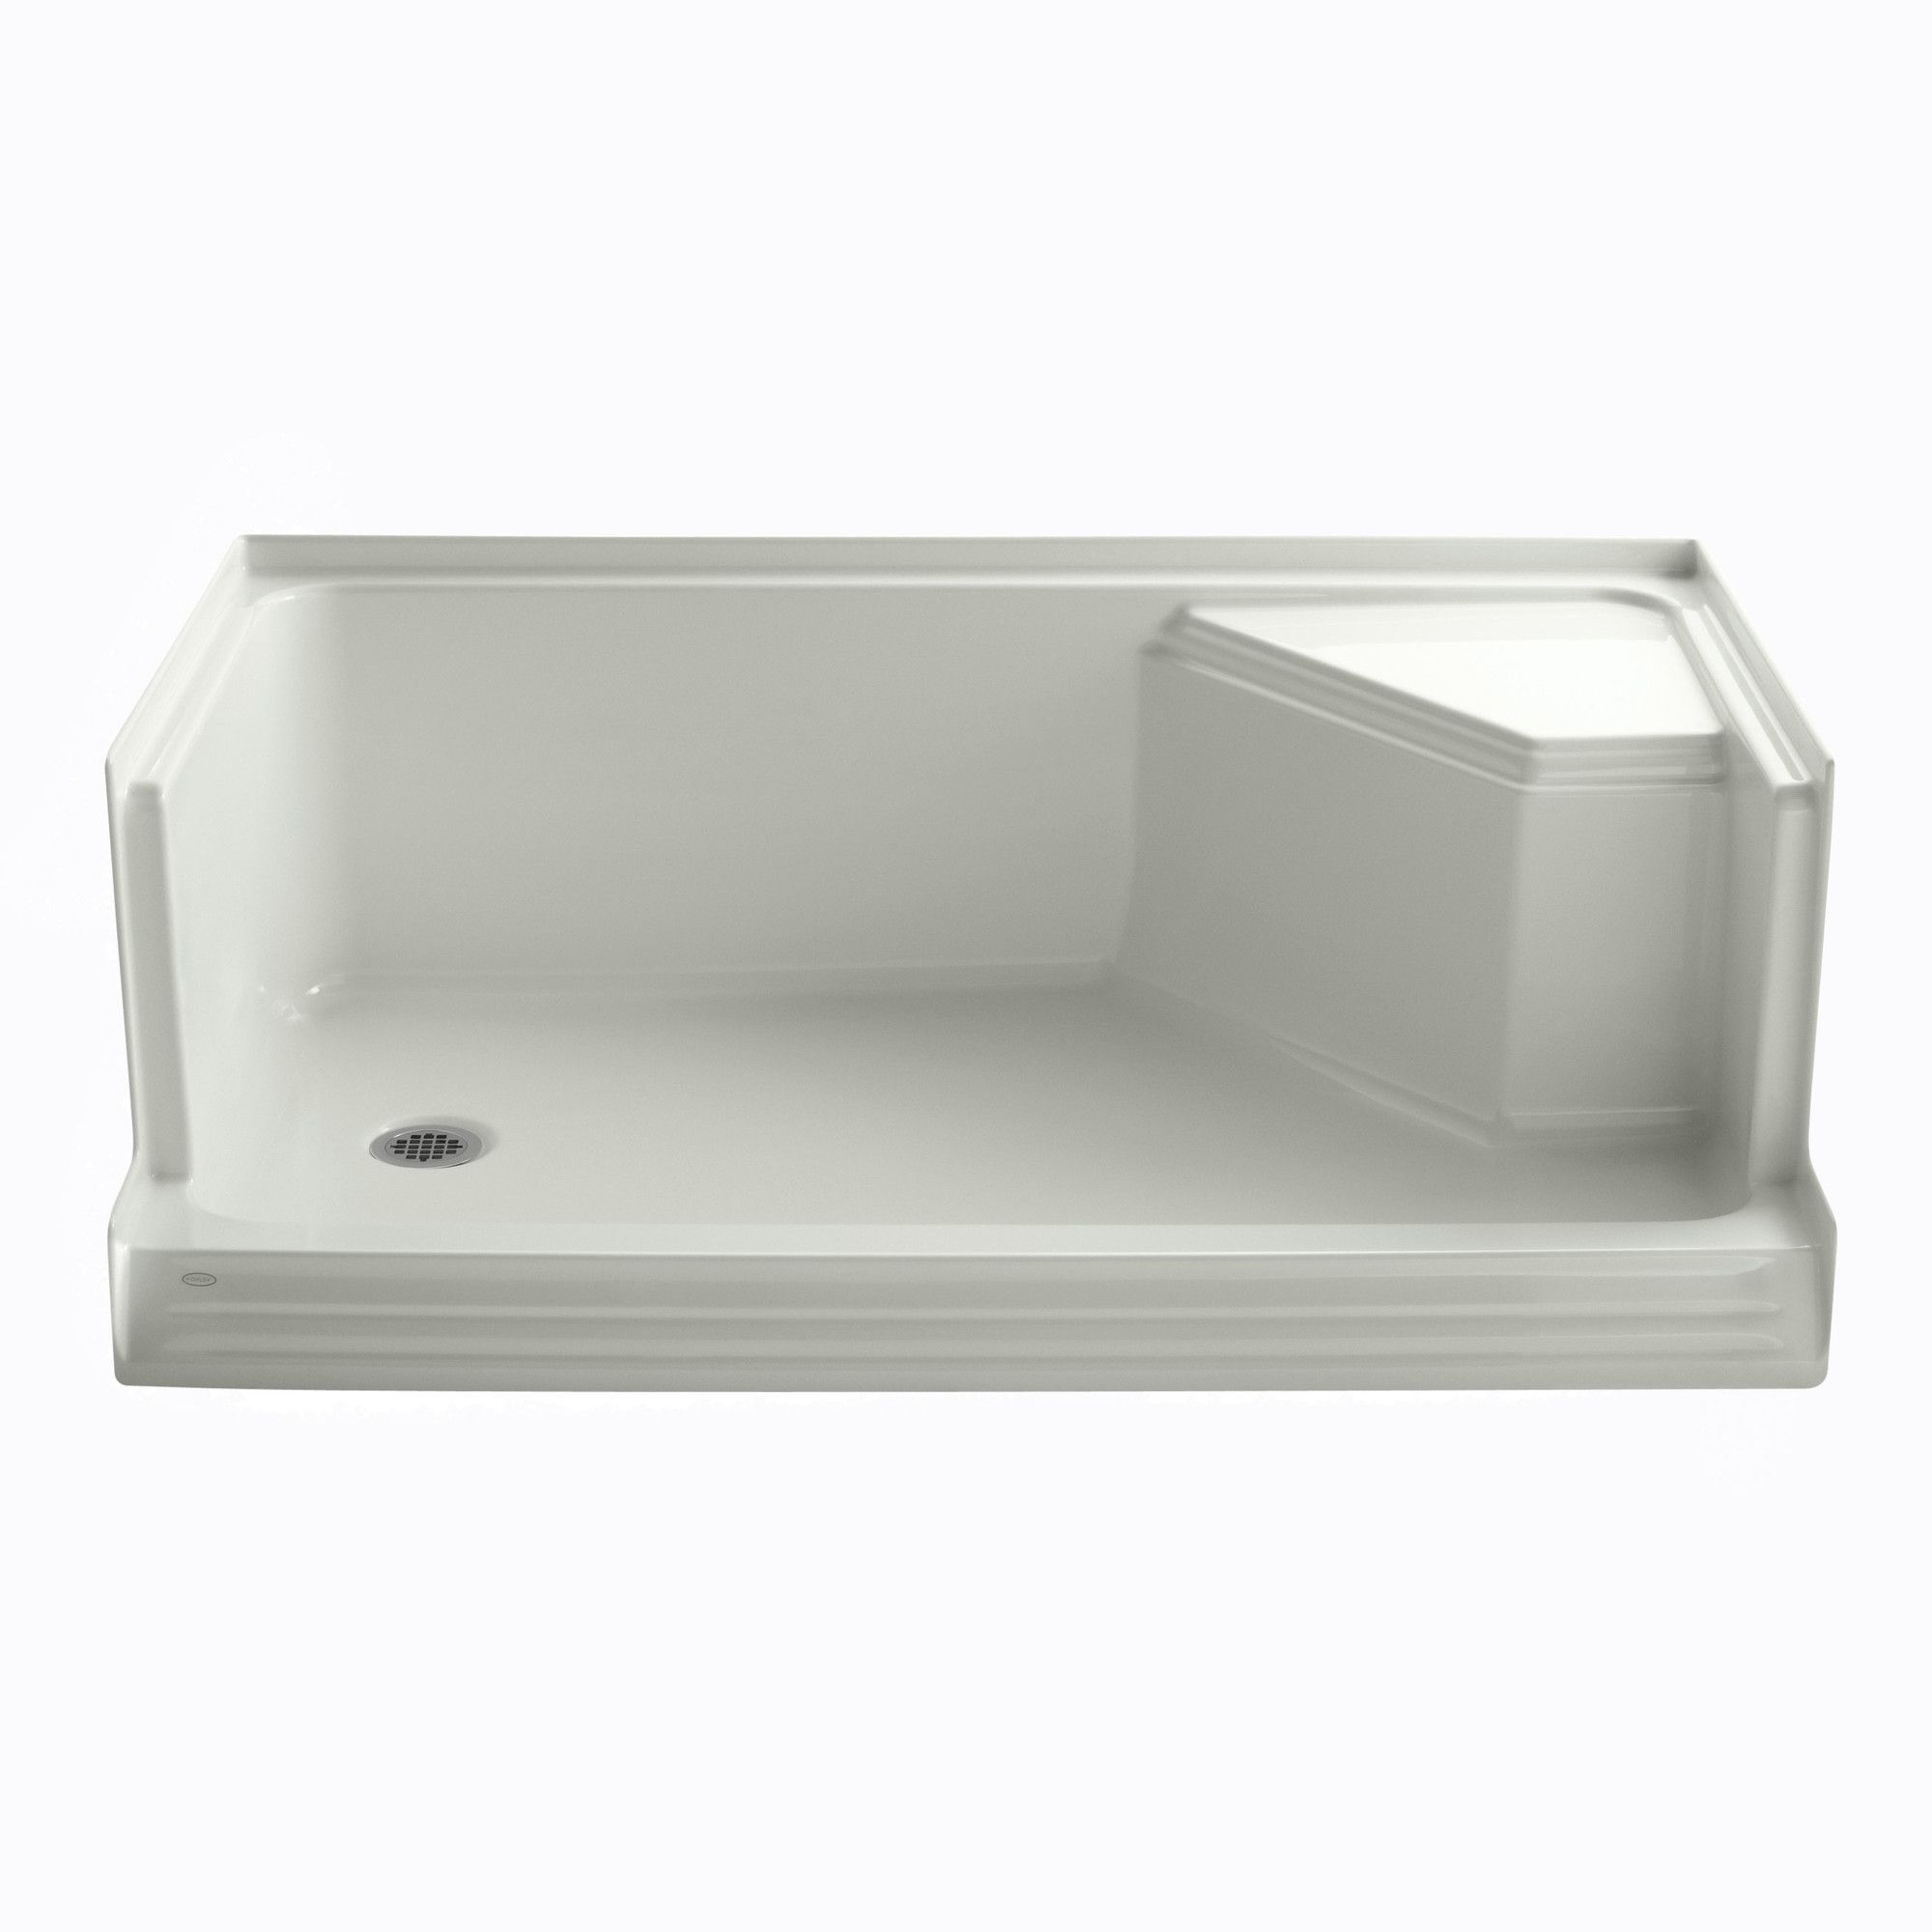 Memoirs 60 X 36 Single Threshold Left Hand Drain Shower Base With Integral Seat At Right Acrylic Shower Base Shower Base Kohler Memoirs